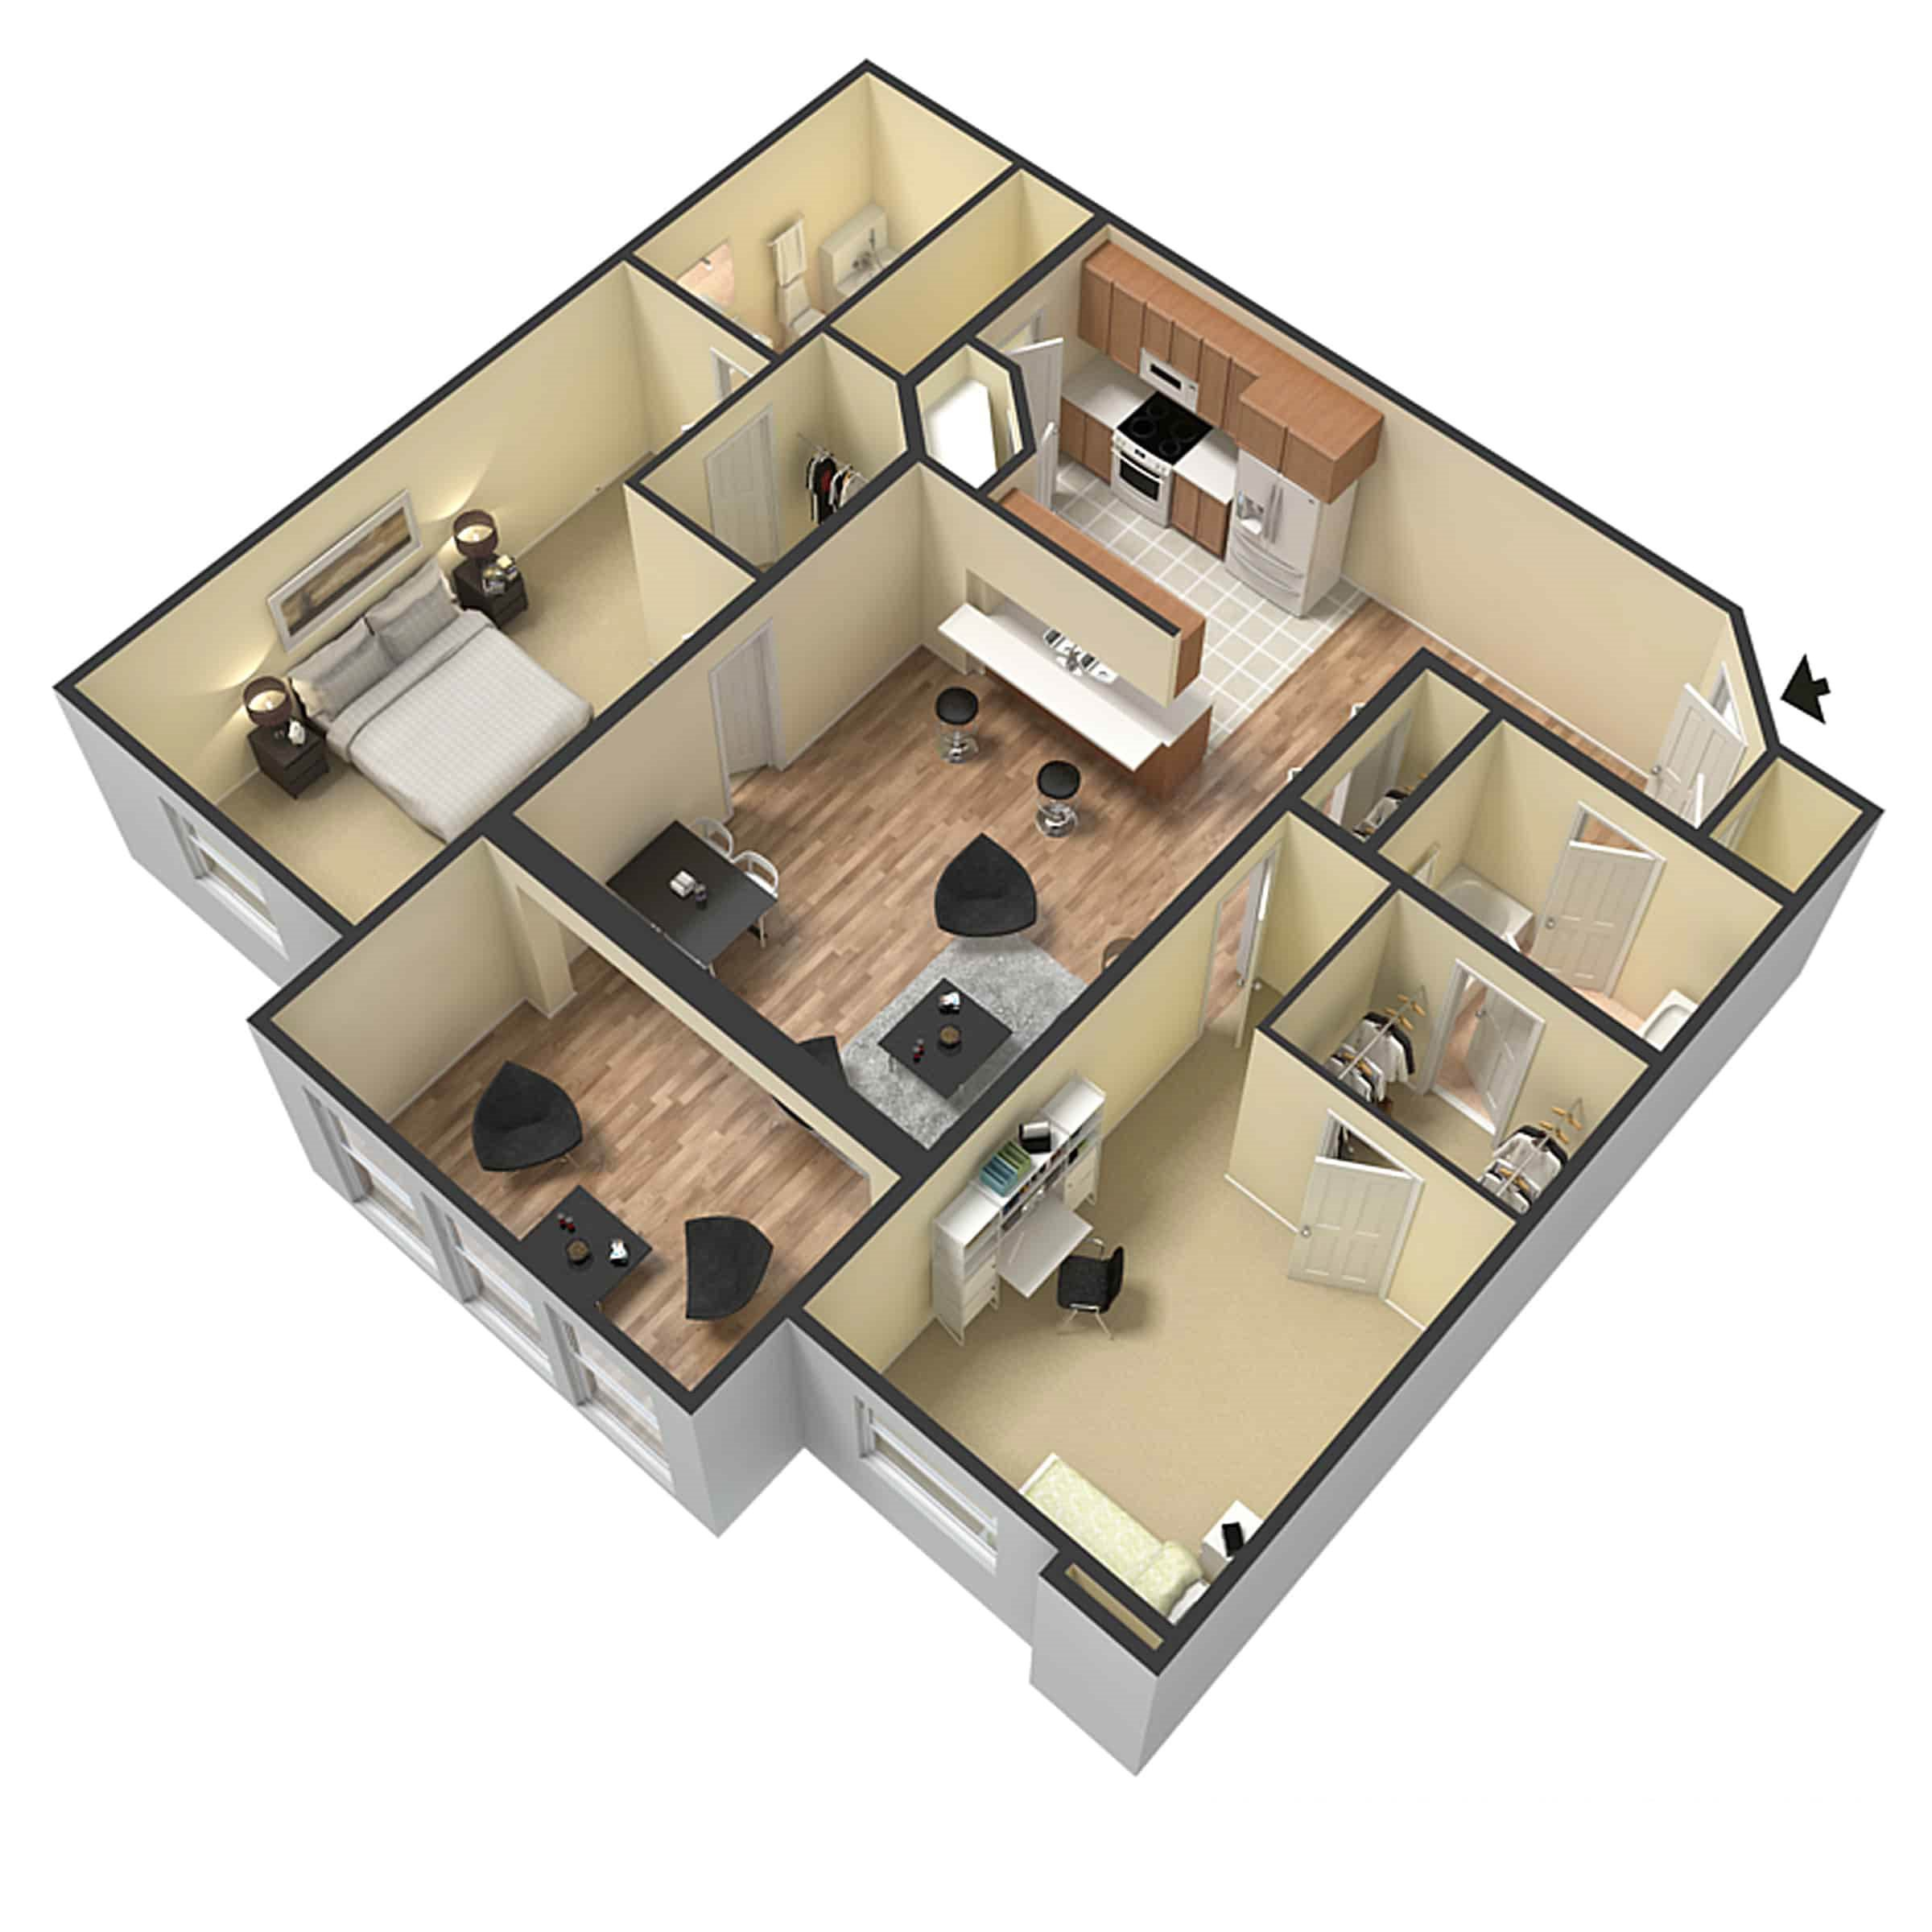 Apartments For Rent In Salinas Ca: Floor Plans Of Homestead Apartments In Hobbs, NM